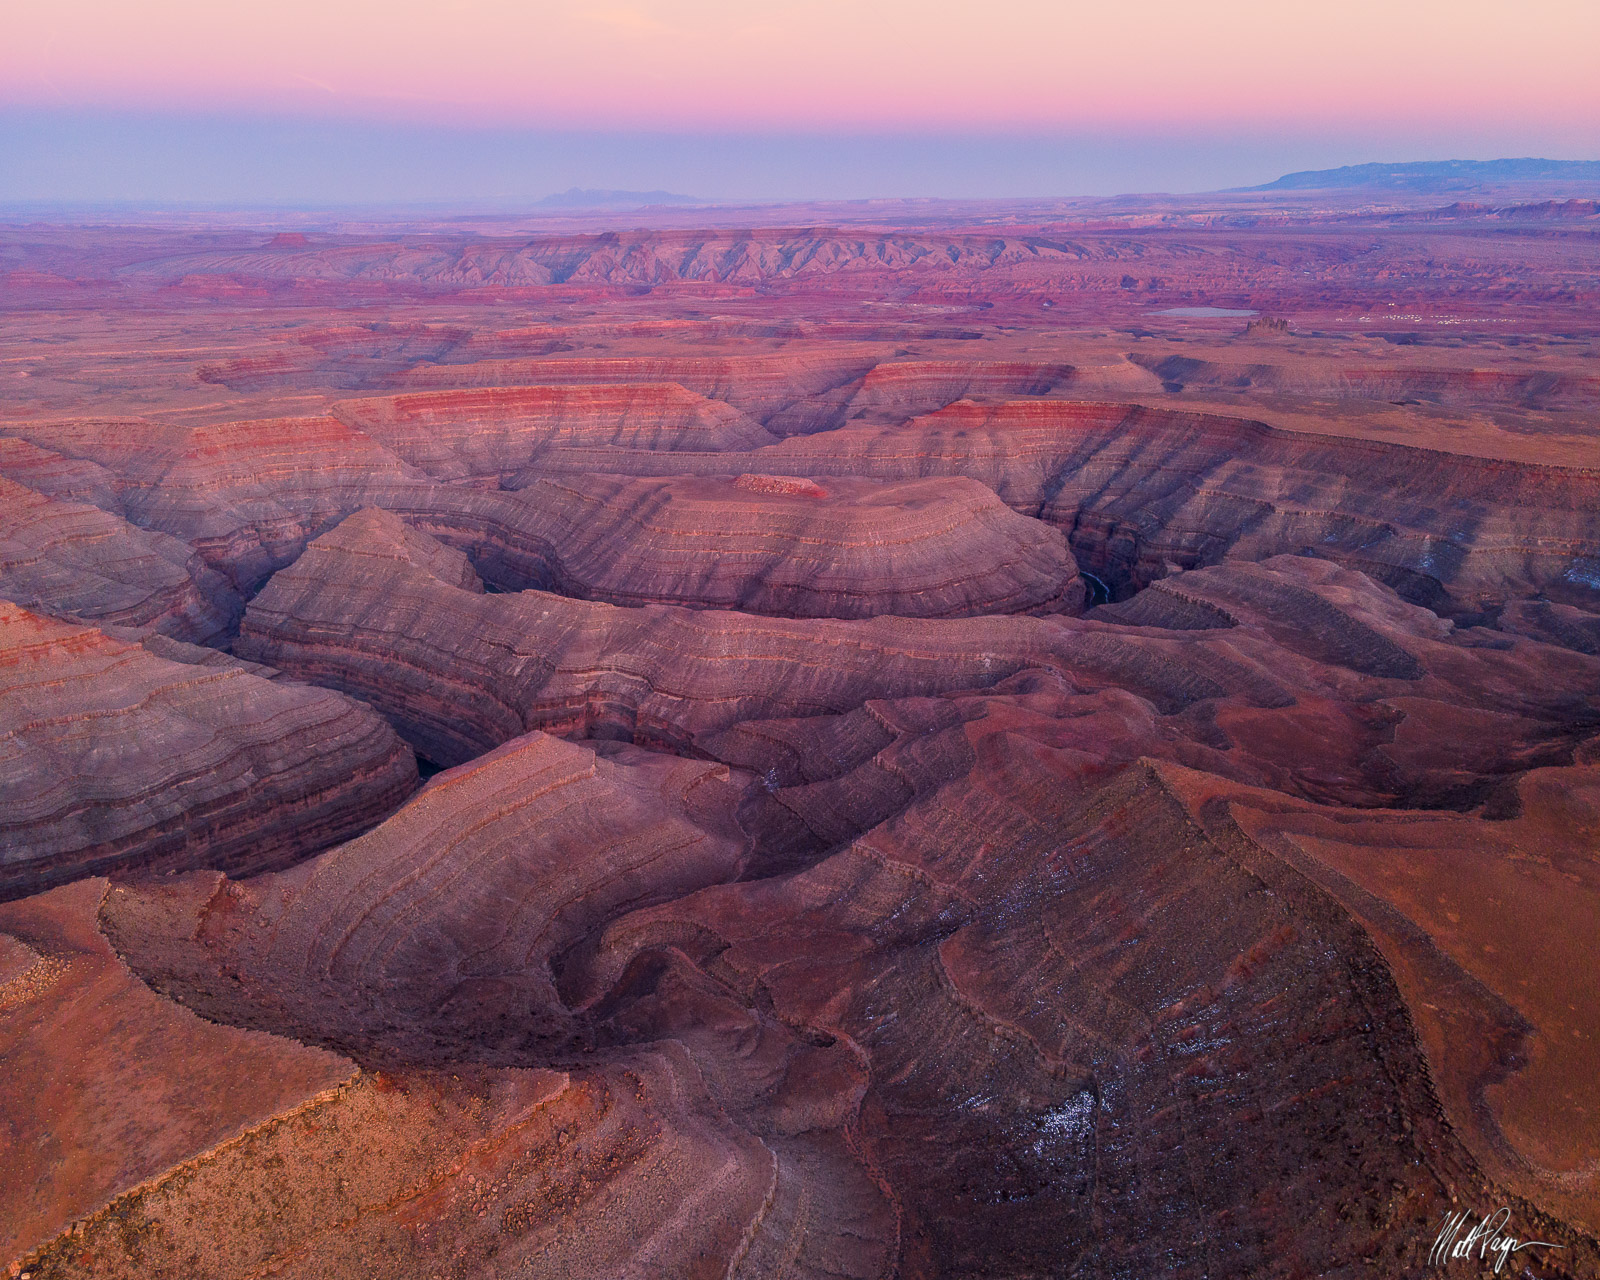 Geologic time presents us with awe-inspiring views that captivate our imaginations and fosters a deep appreciation for nature...